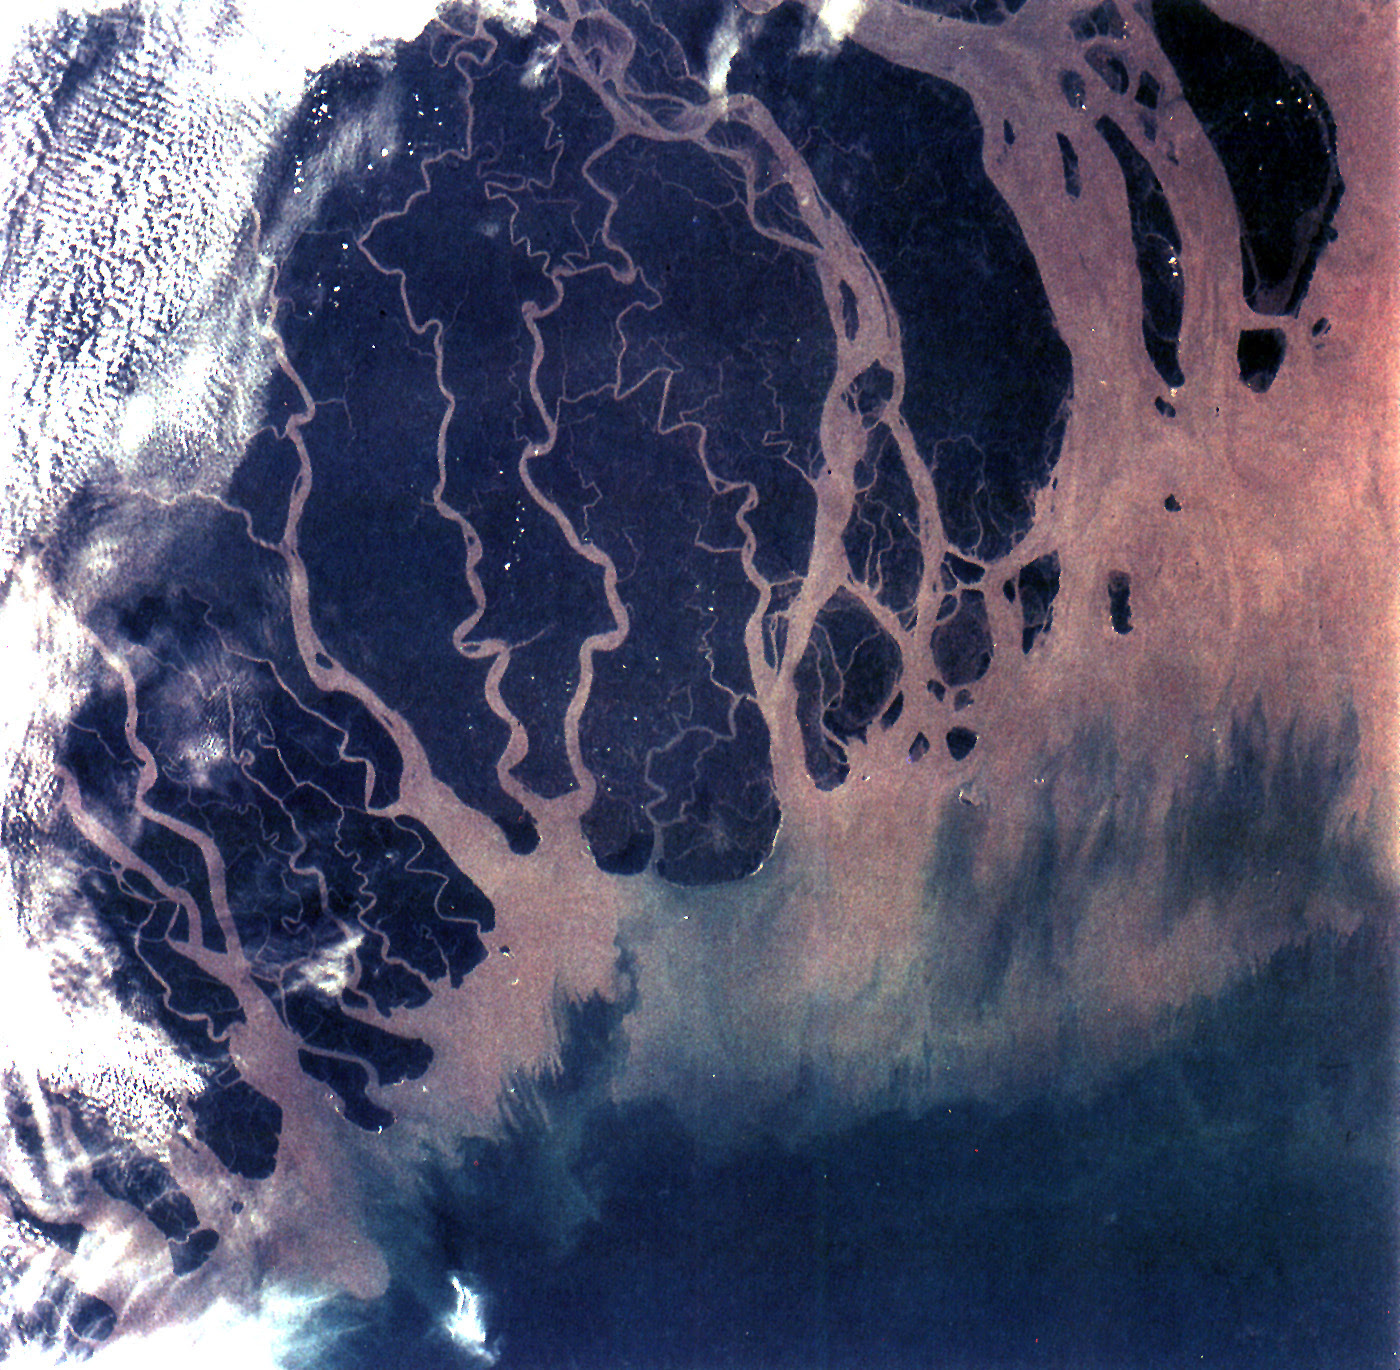 http://upload.wikimedia.org/wikipedia/commons/8/81/Ganges_River_Delta%2C_Bangladesh%2C_India.jpg